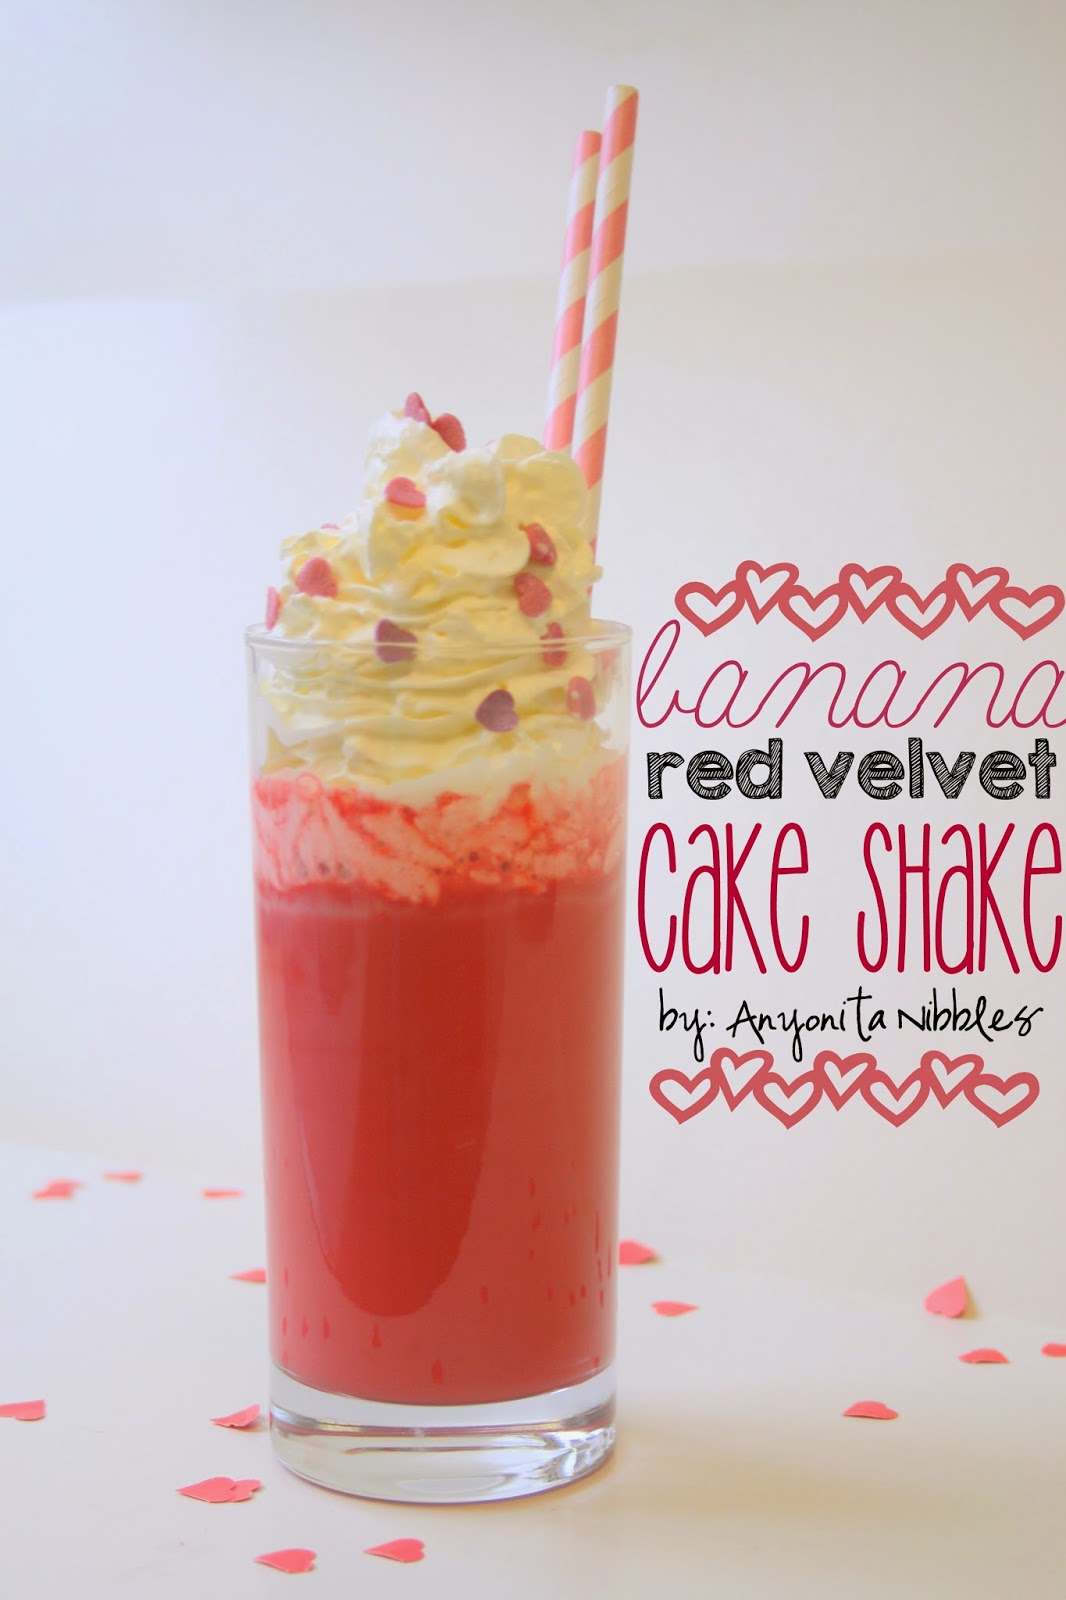 100 calorie Banana Red Velvet Cake Shake from Anyonita Nibbles